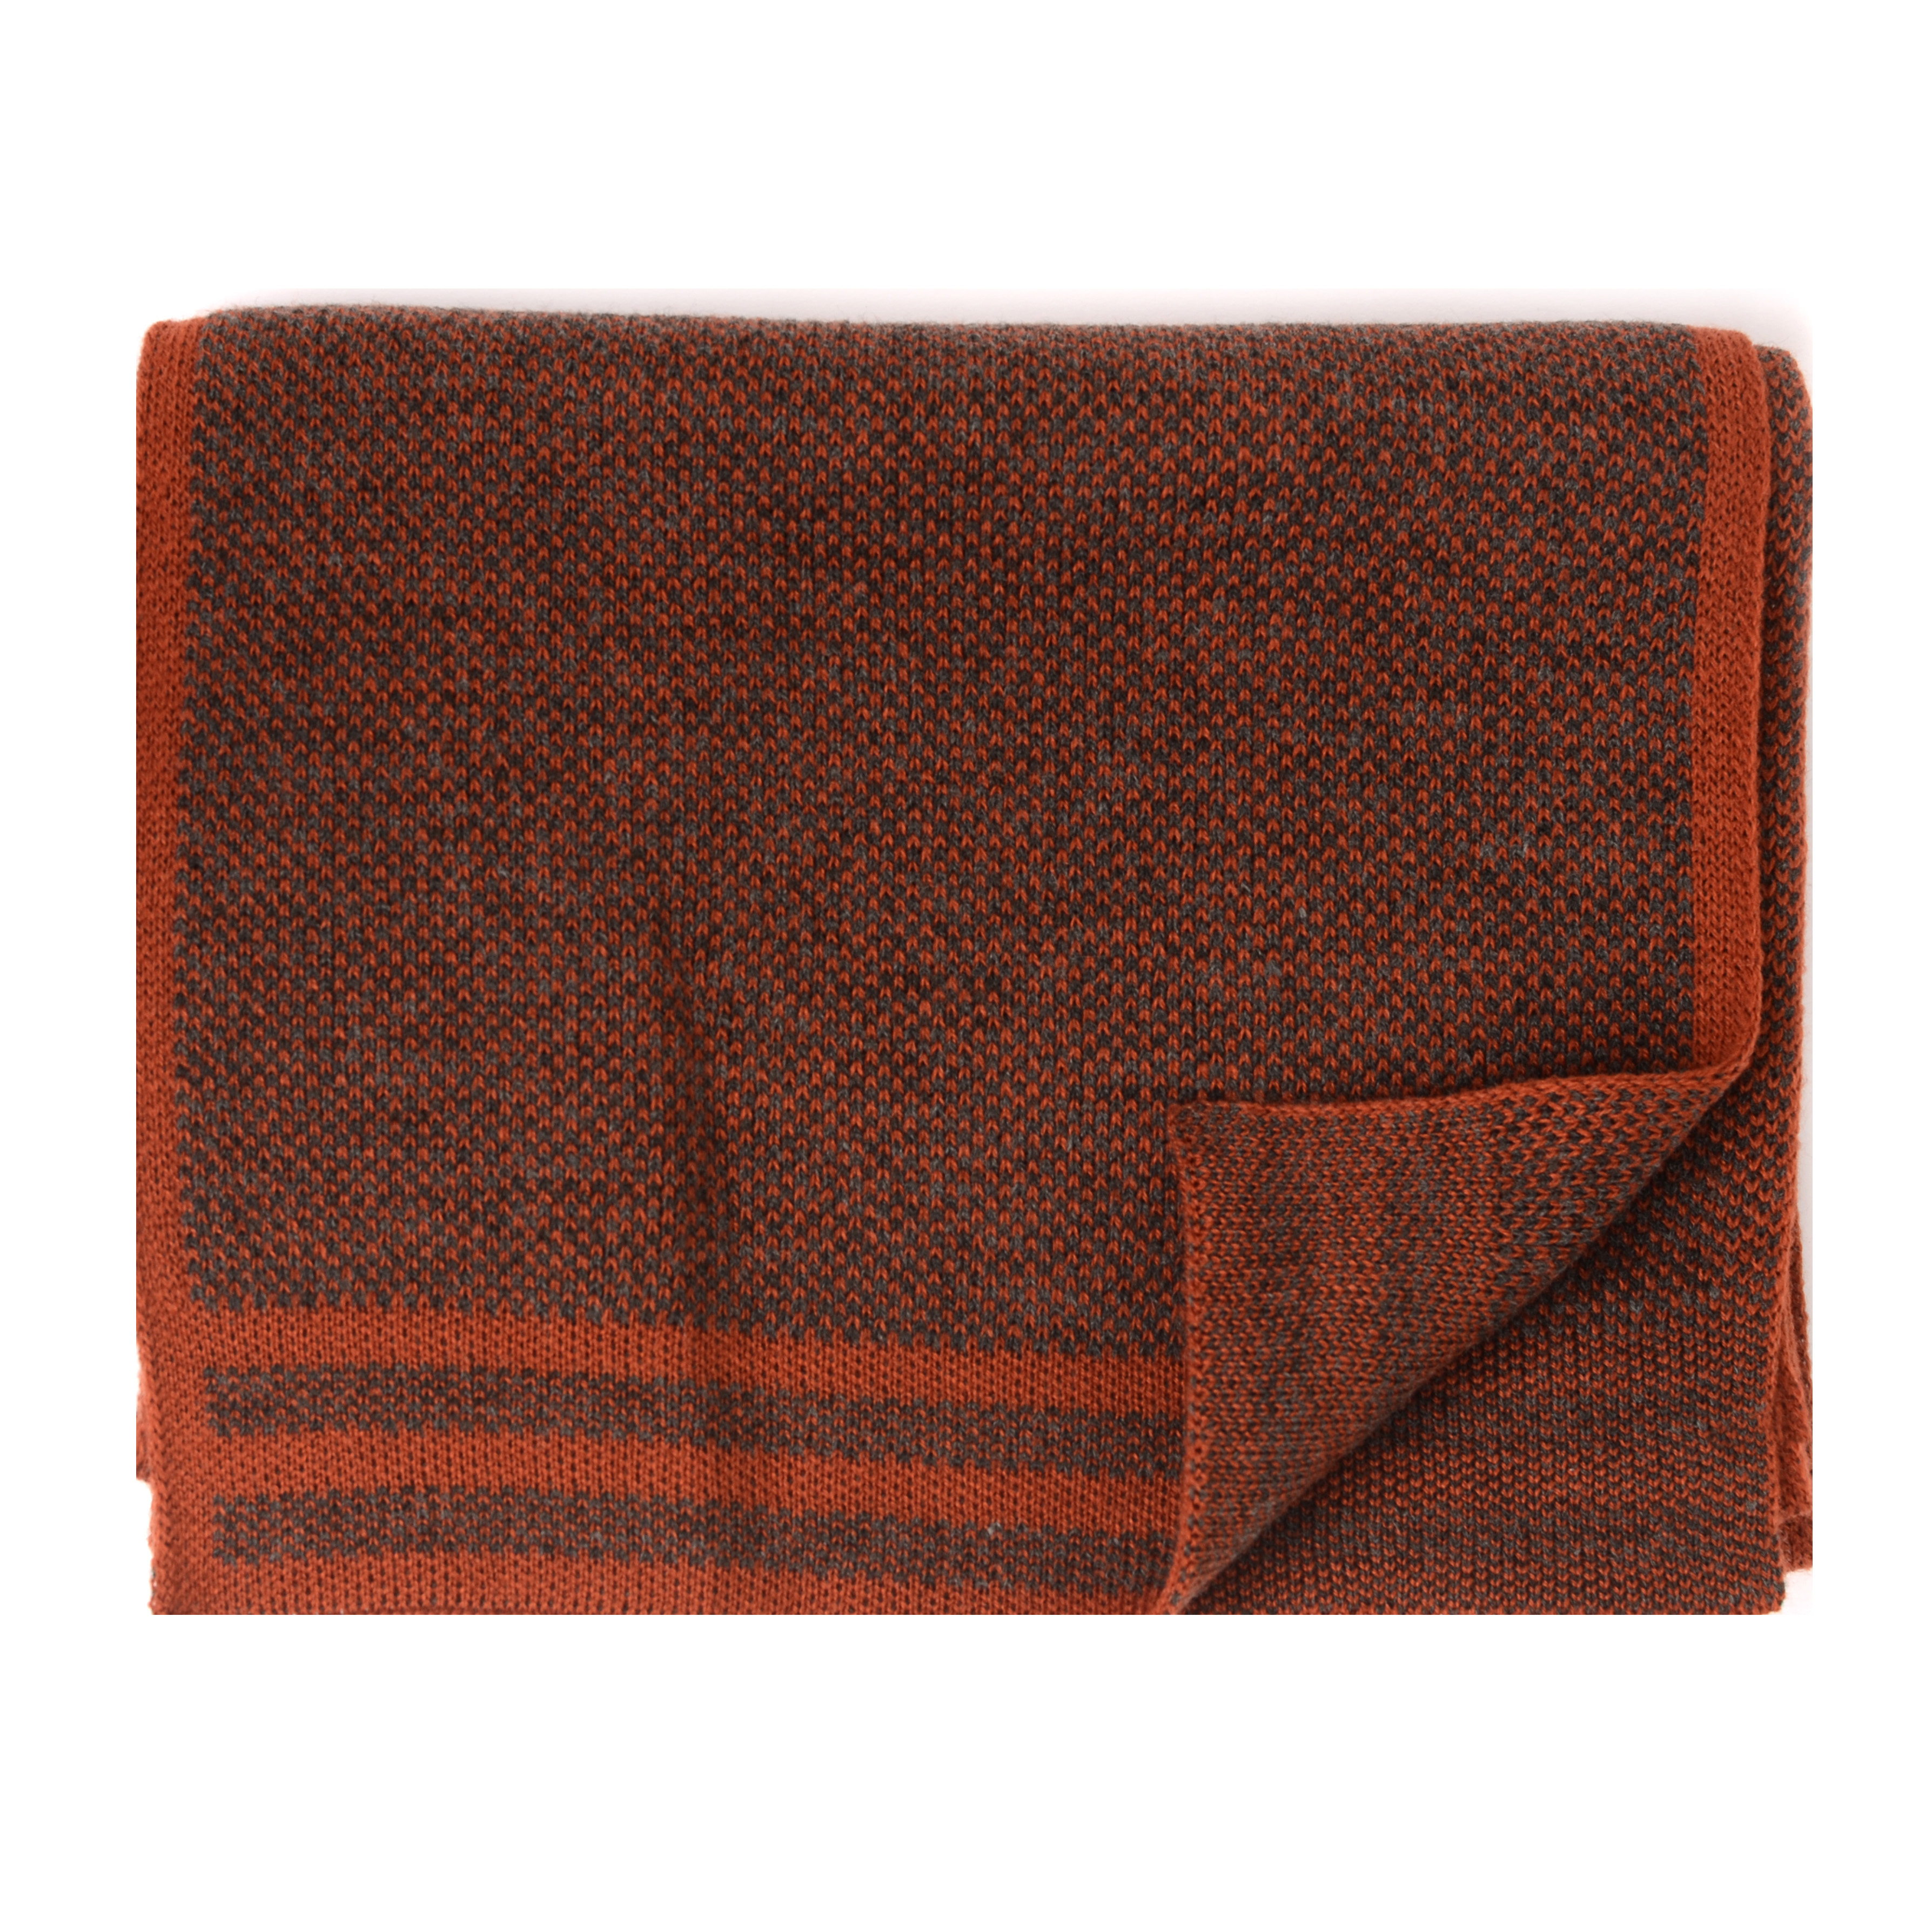 Jowin   Scarf knitted with colored border orange